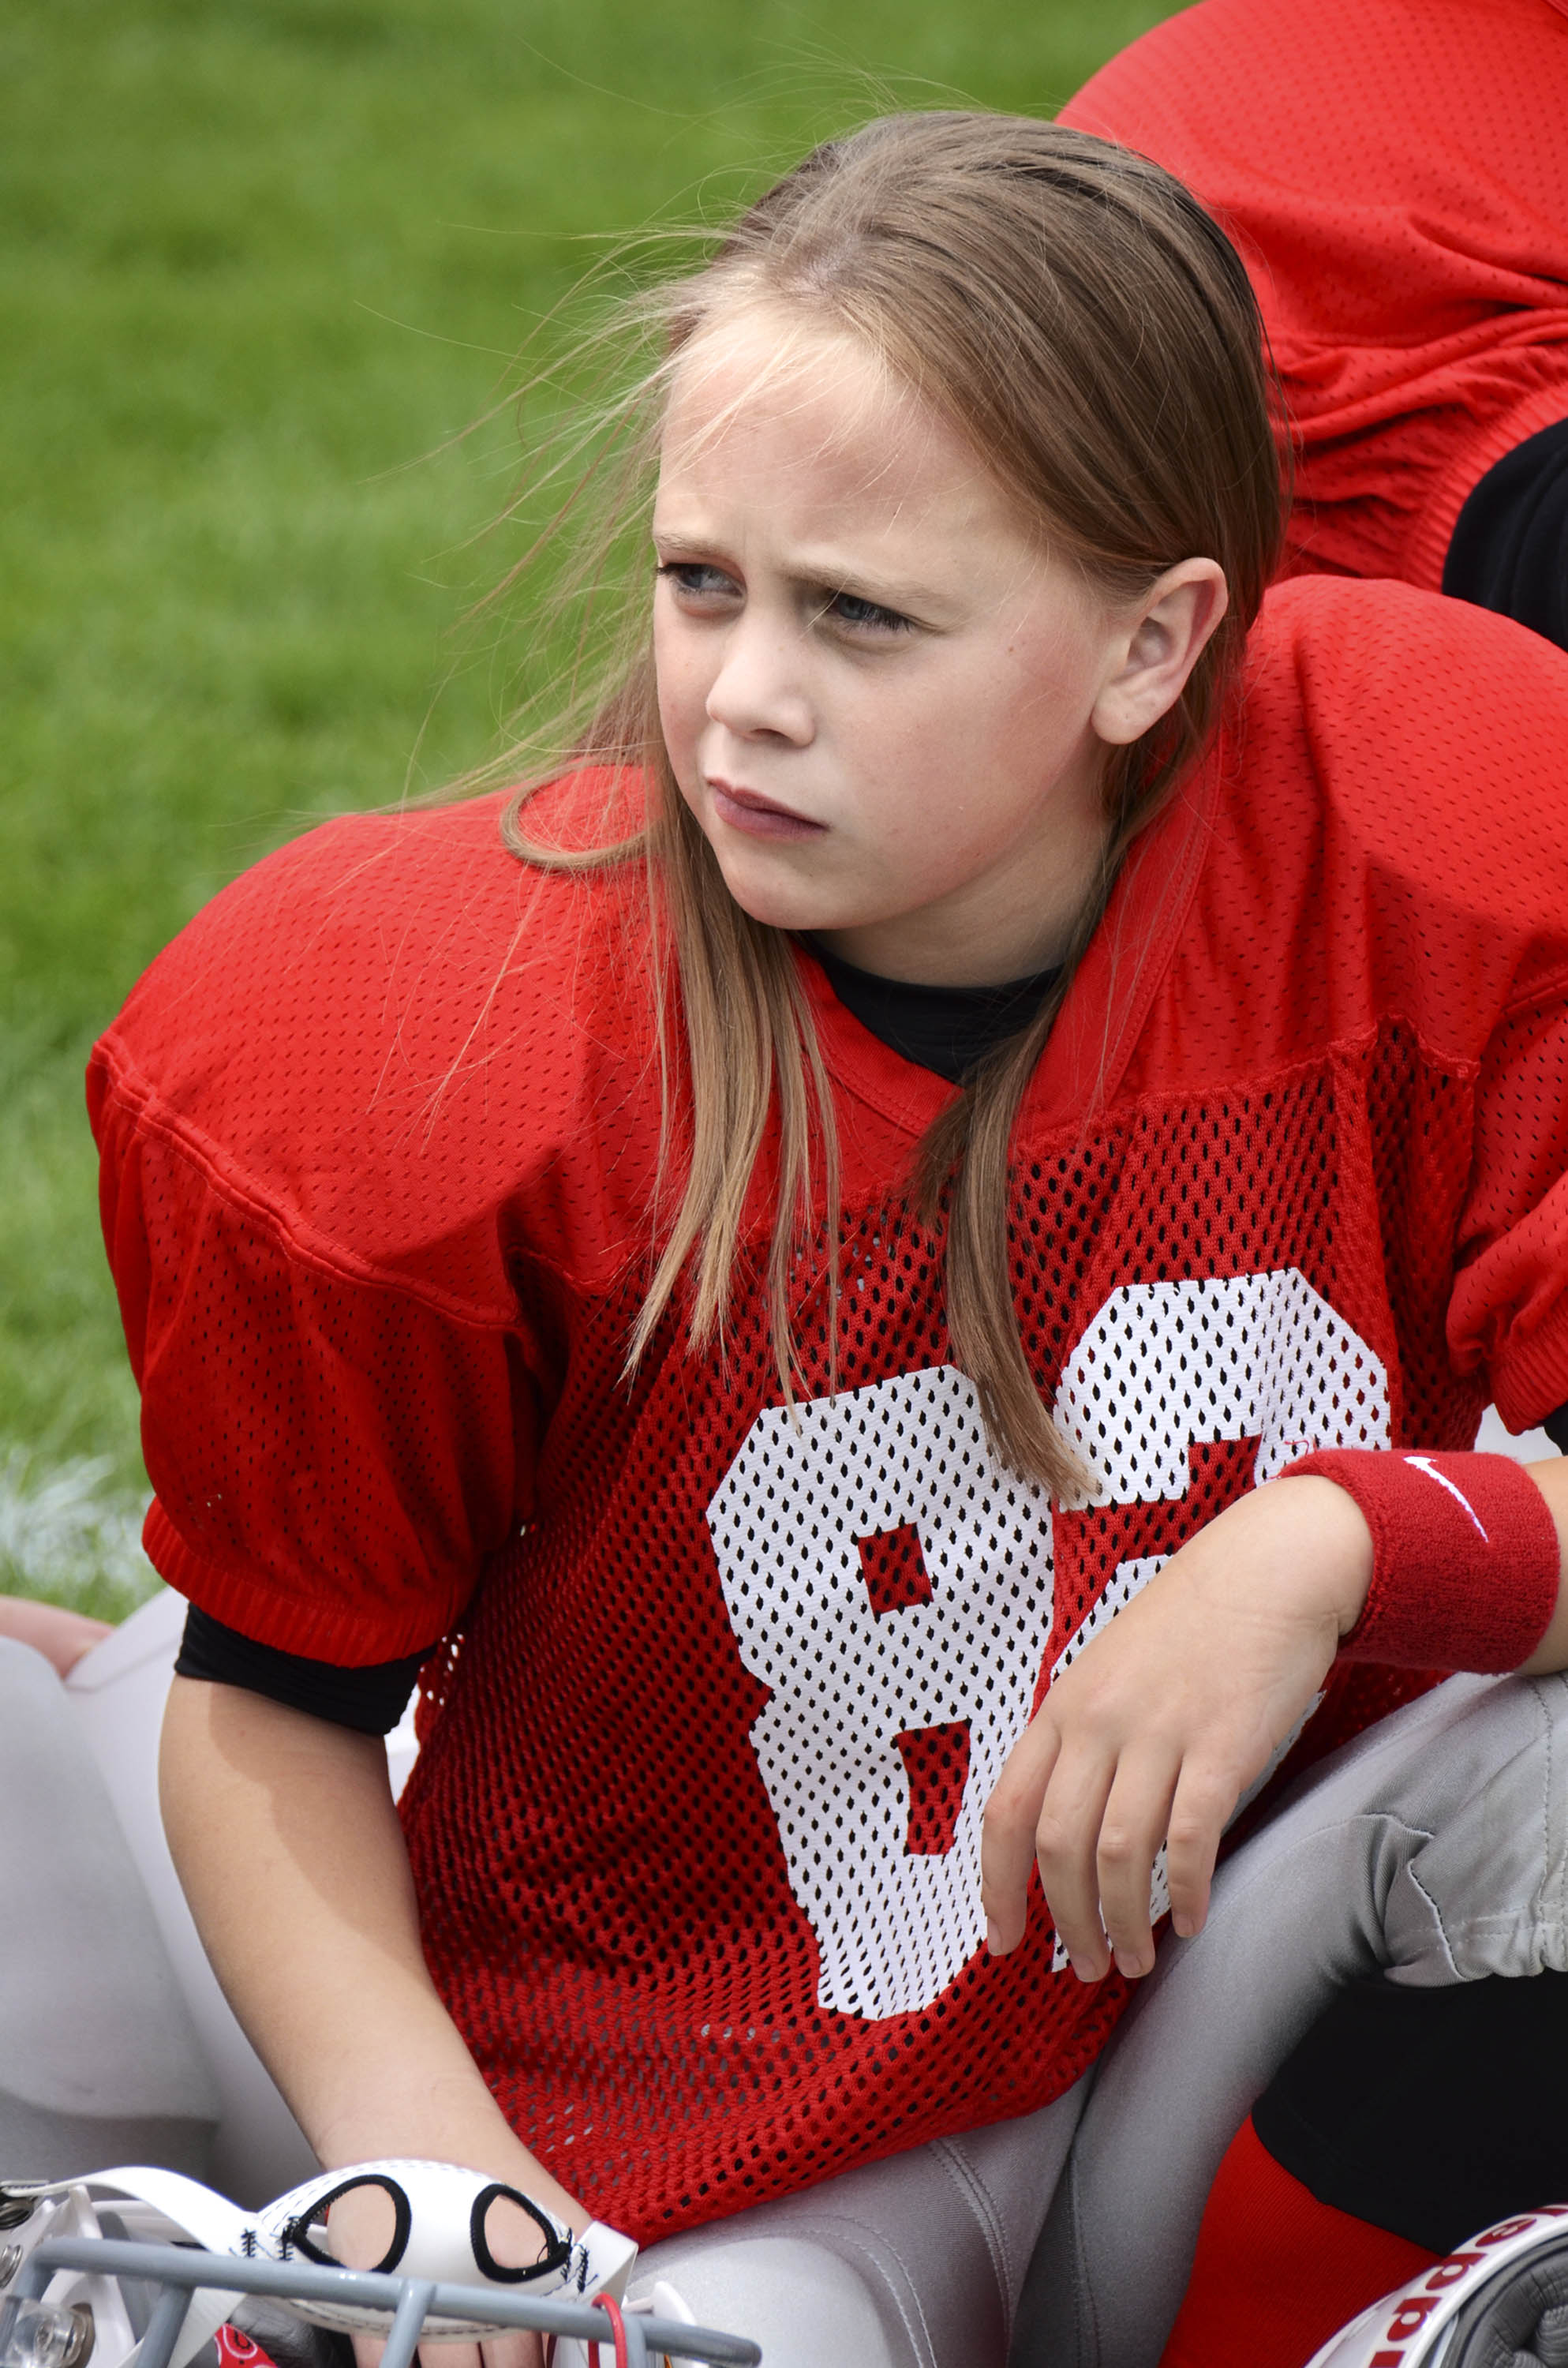 Kami Gold, 11, plays in the Utah Girls Tackle Football League, the first known full-contact all-girls league in the U.S.